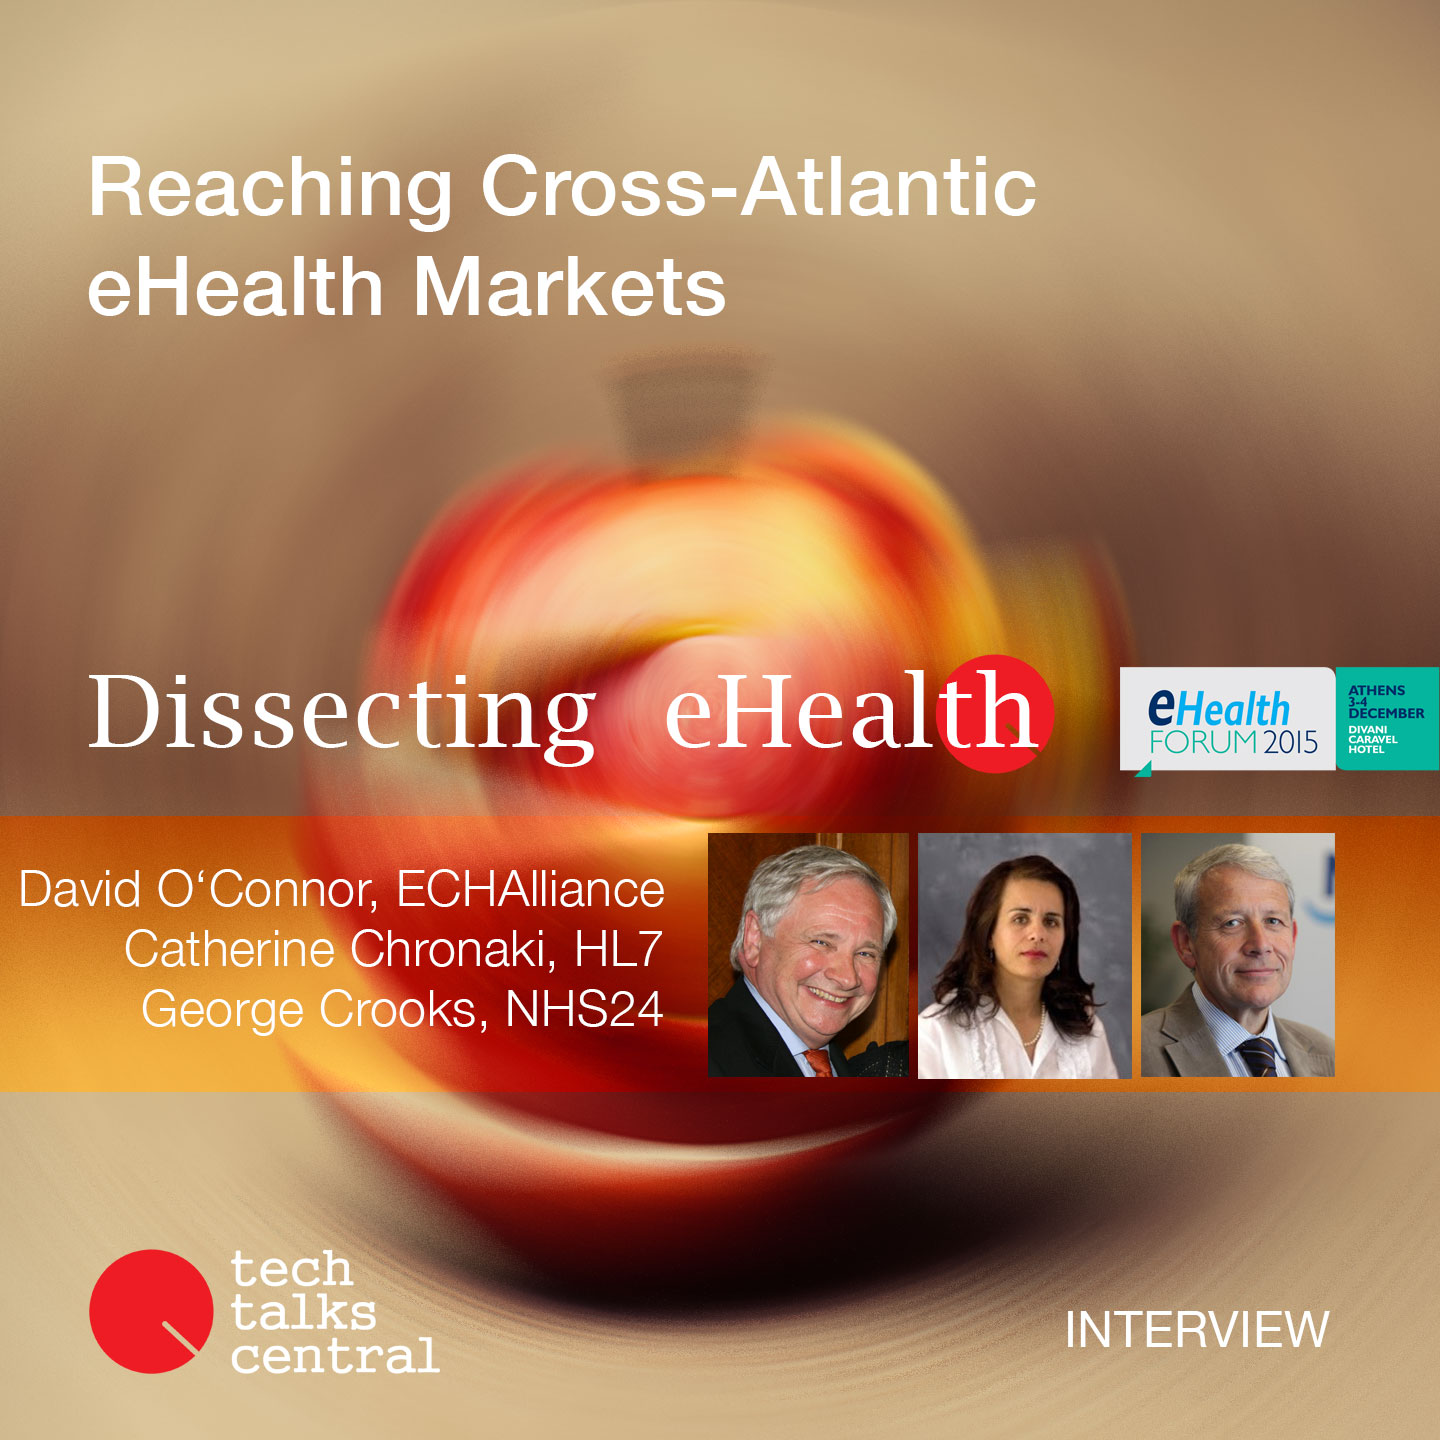 Reaching Cross-Atlantic eHealth Markets